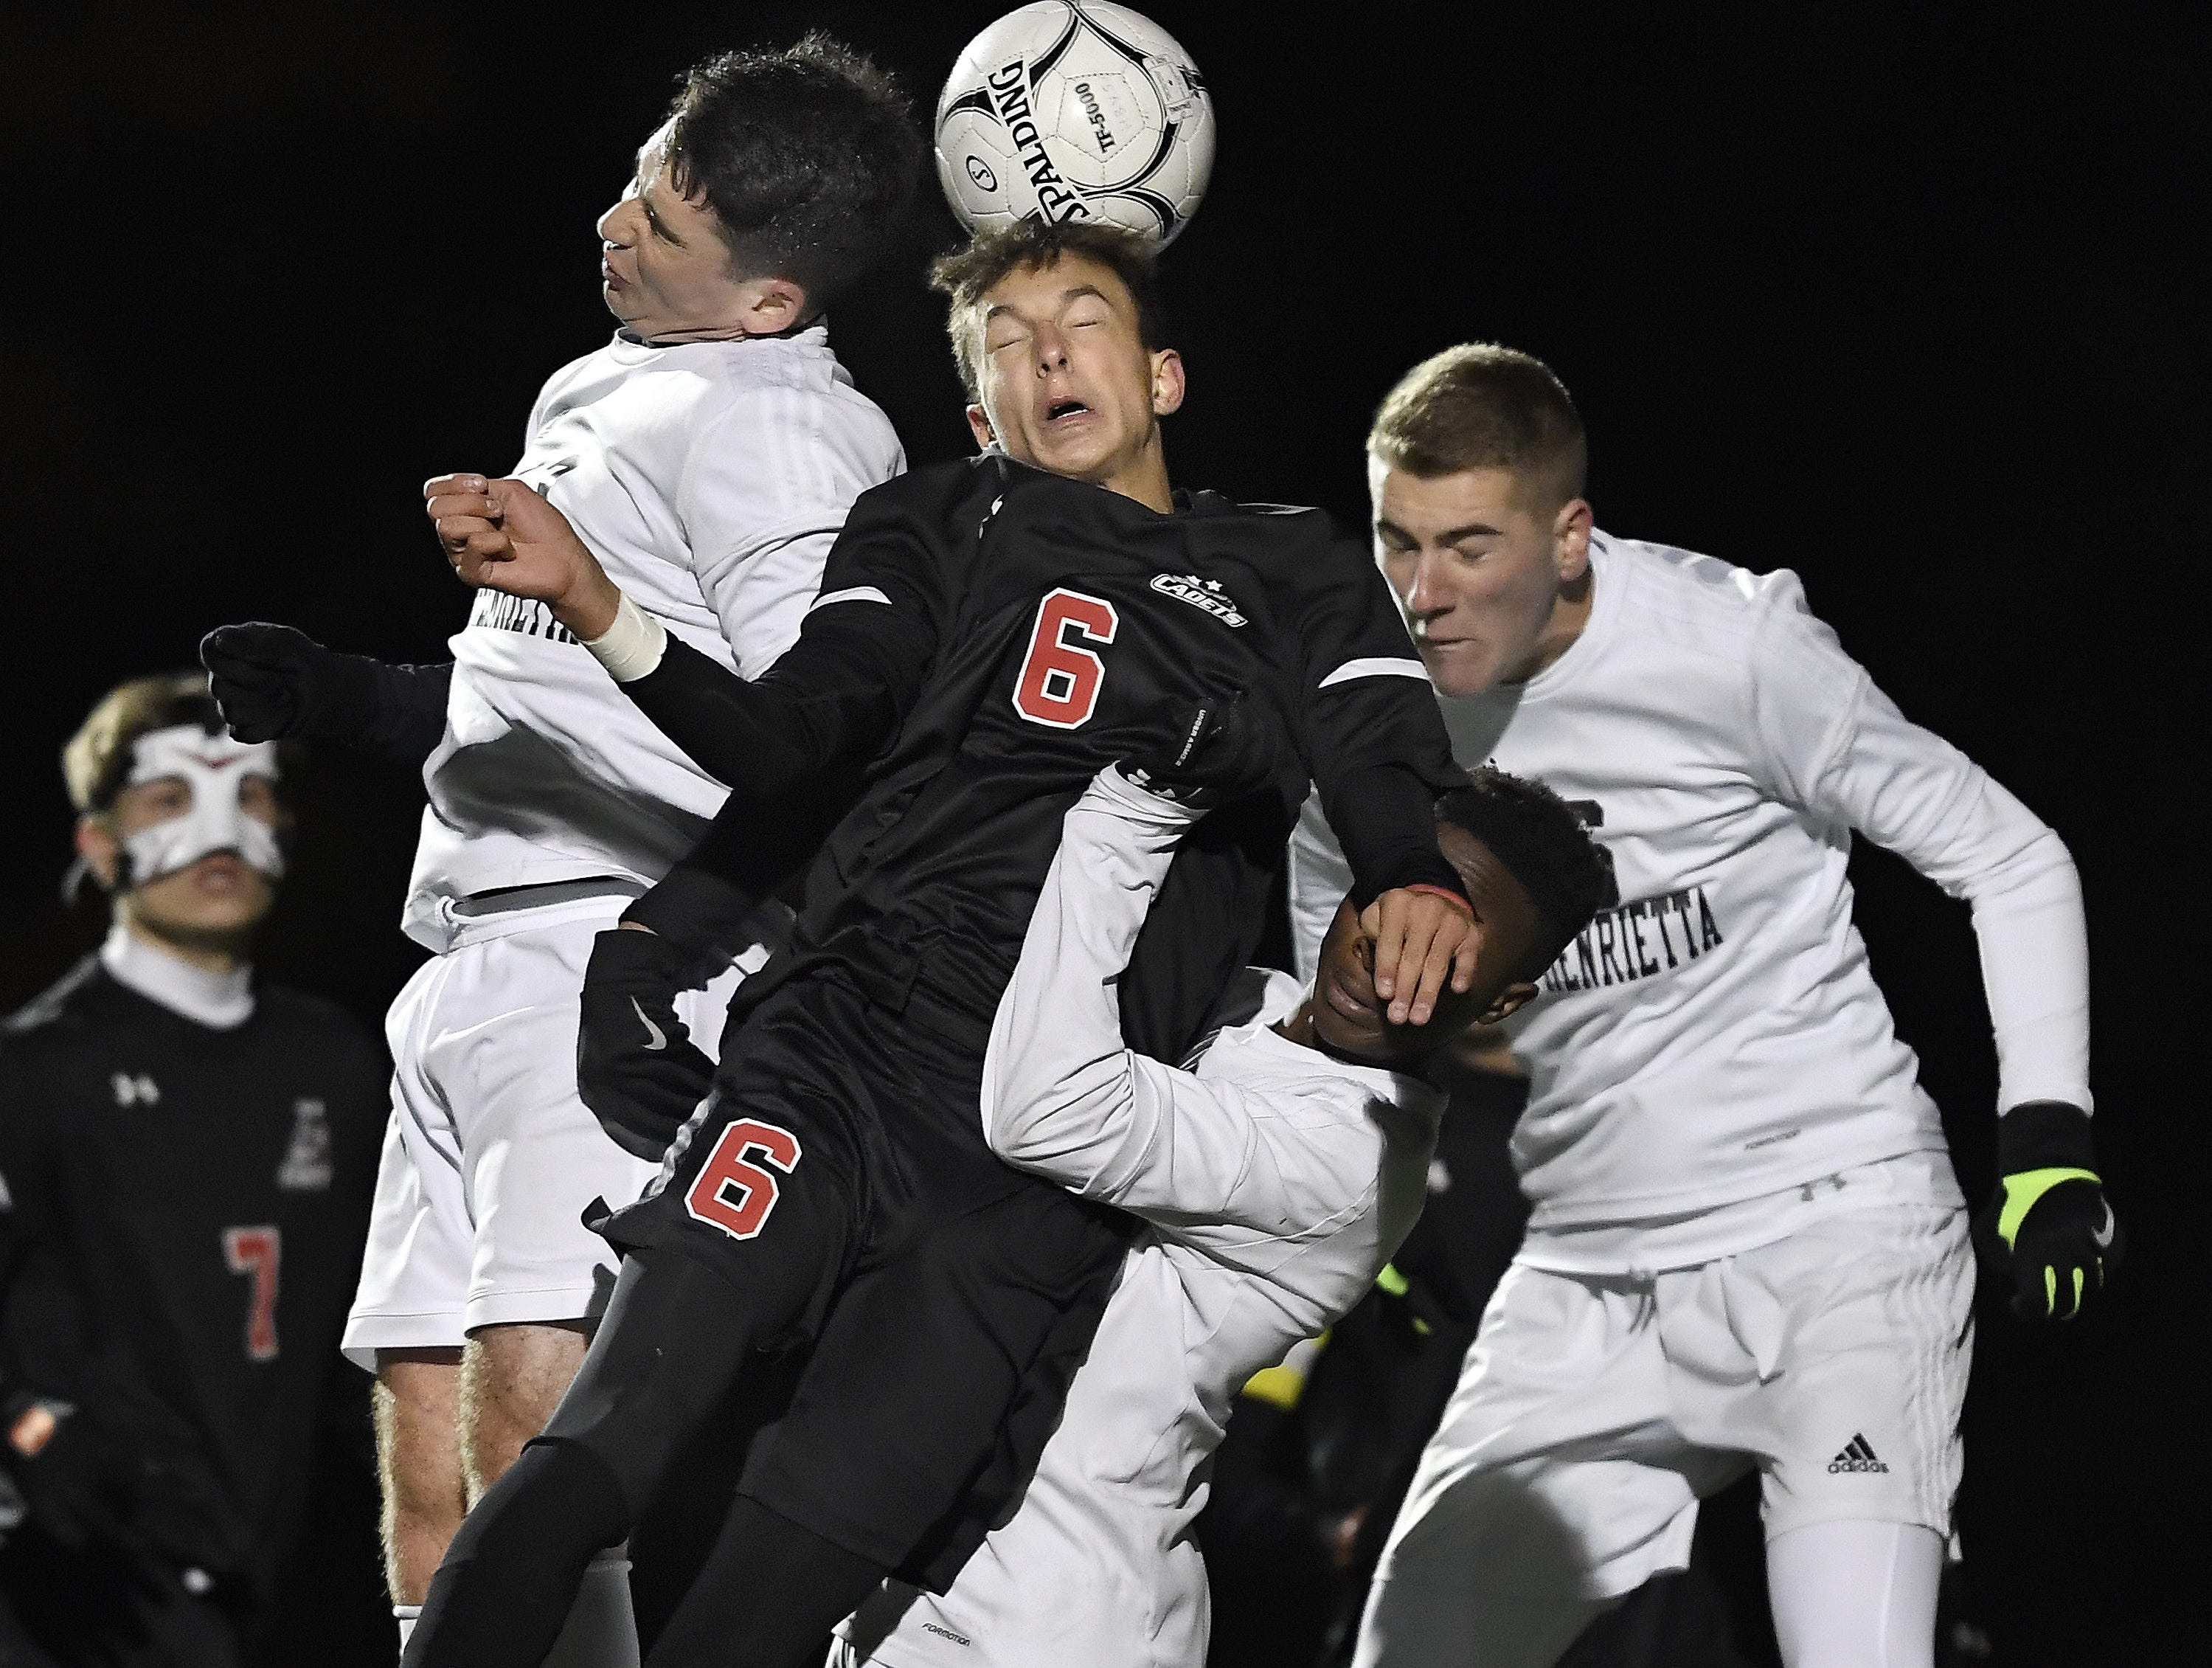 Hilton's Justin Arilotta connects on a header while surrounded by Rush-Henrietta defenders during the Section V Class AA championship game.